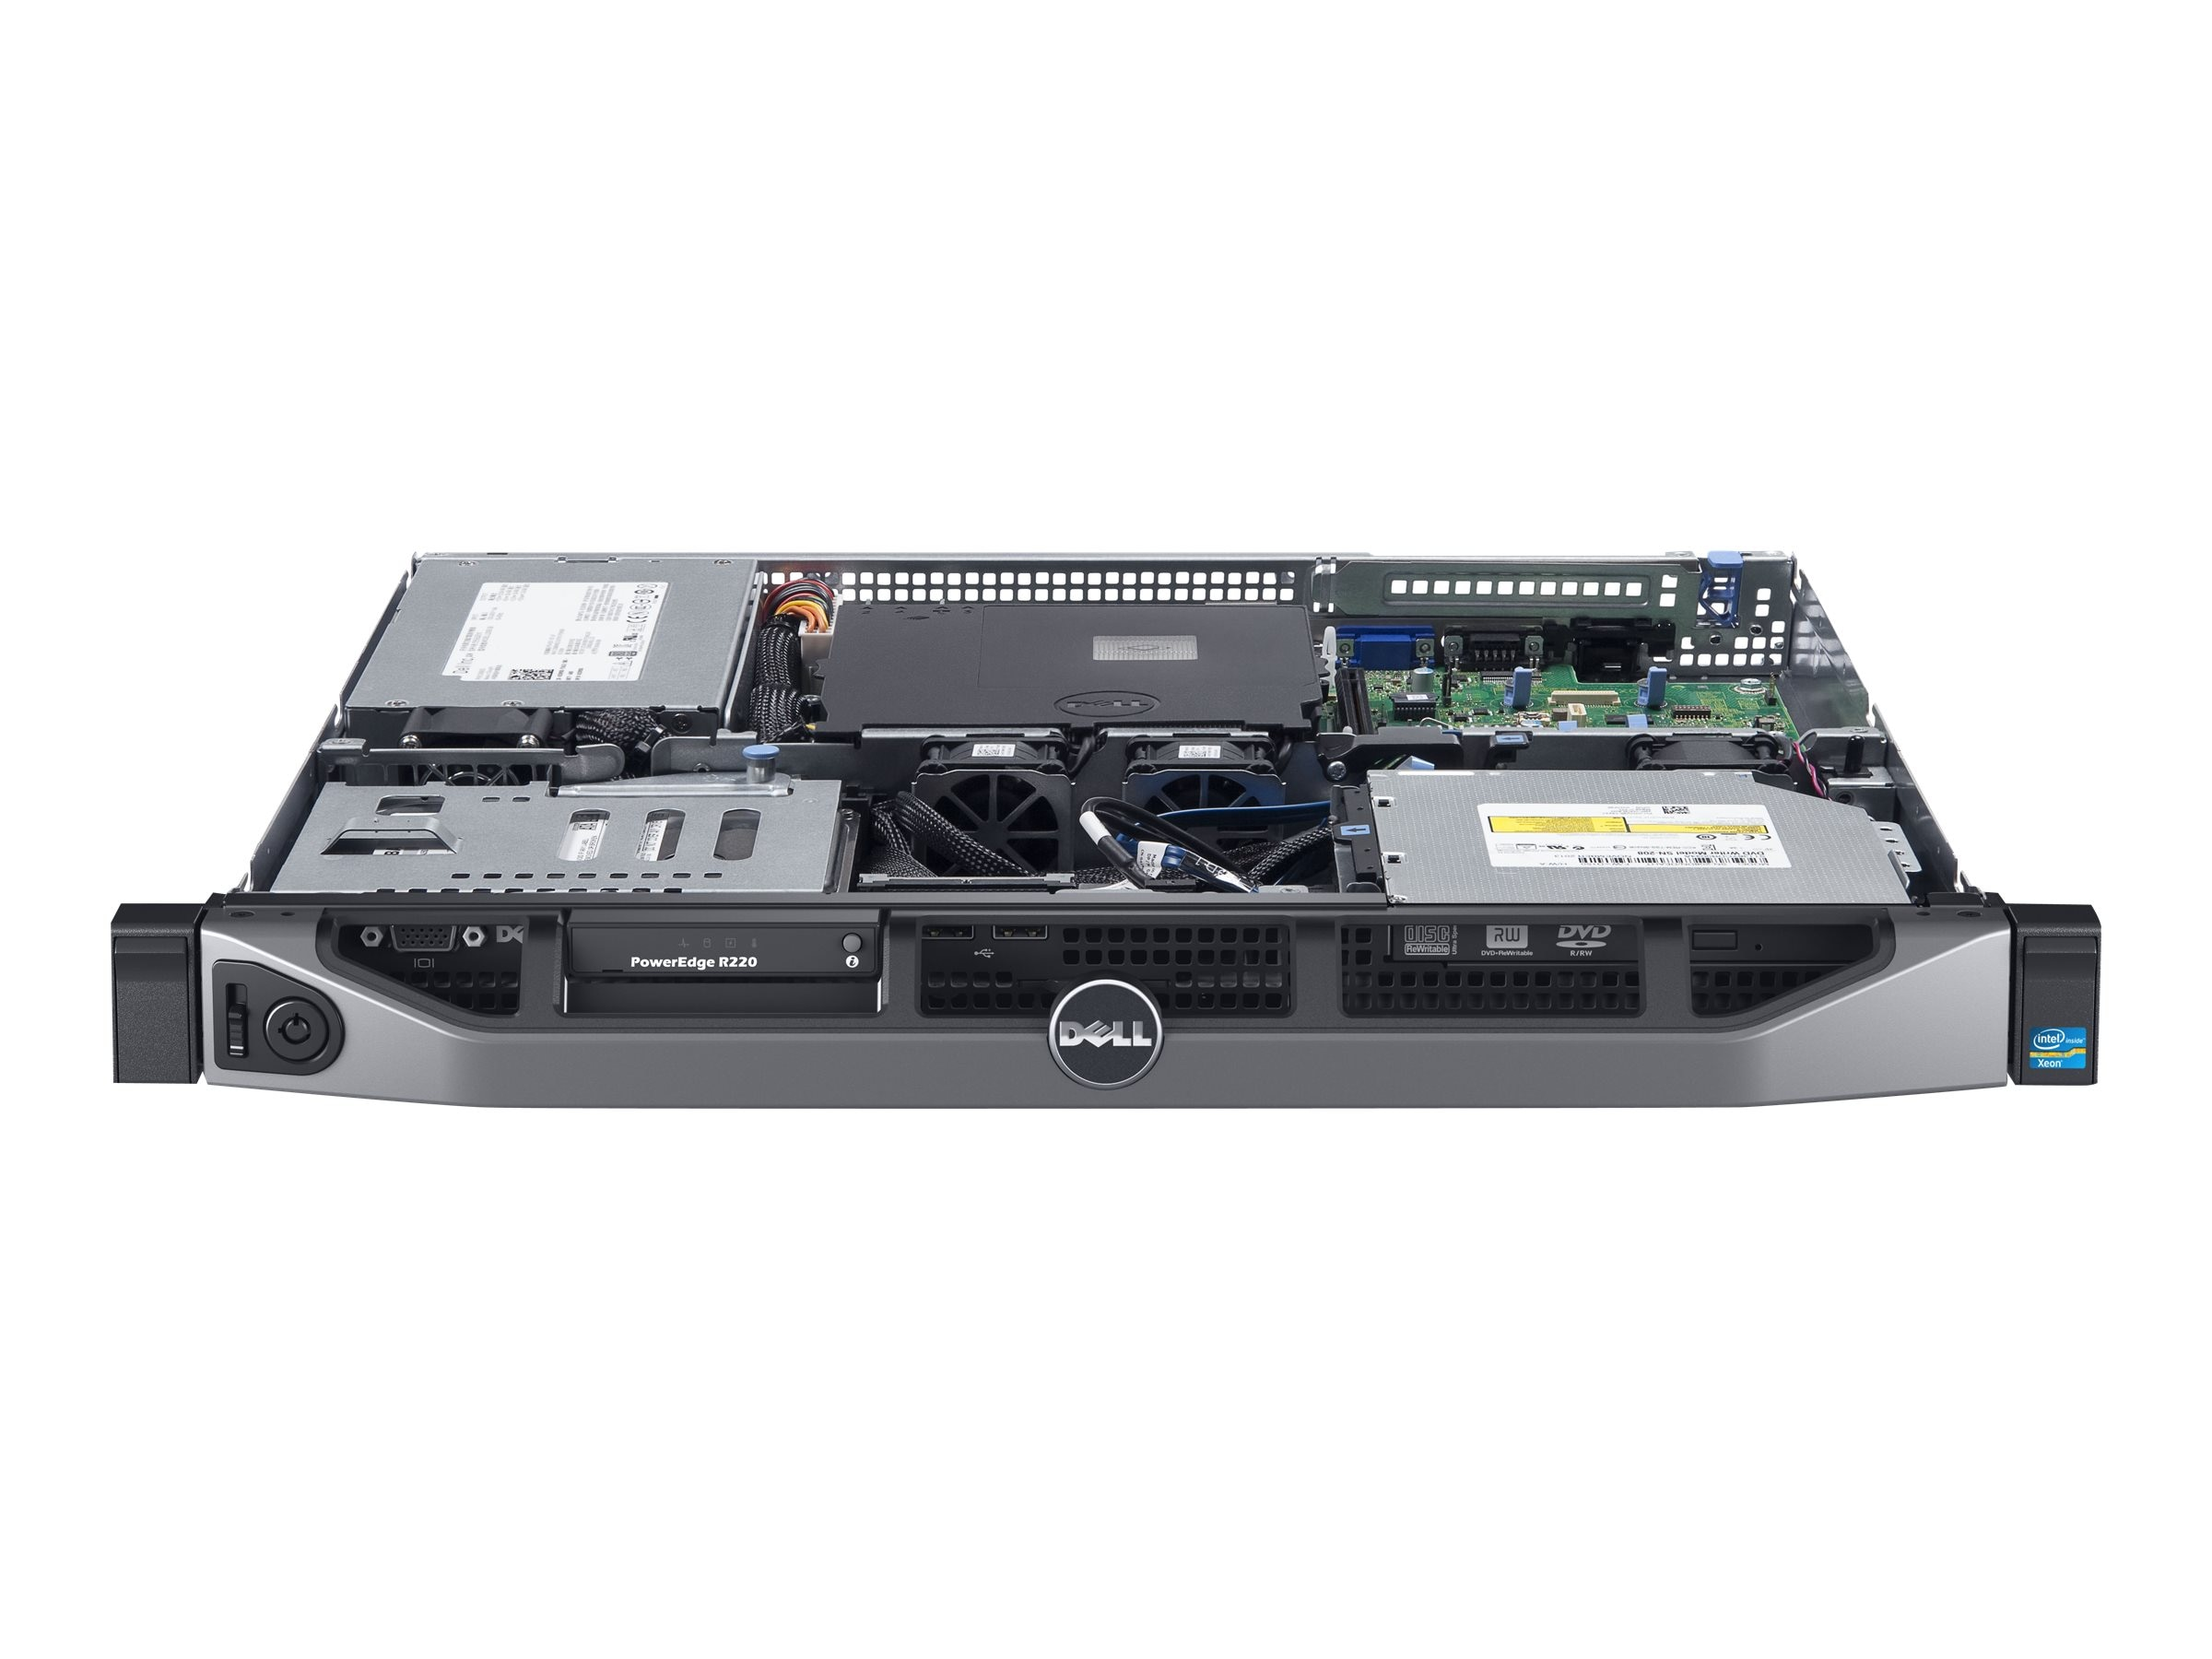 Dell PowerEdge R220 1U RM Xeon QC E3-1220 v3 3.1GHz 8GB 1x1TB SATA 2x3.5 DC Bays DVD 2xGbE 250W, 463-6116